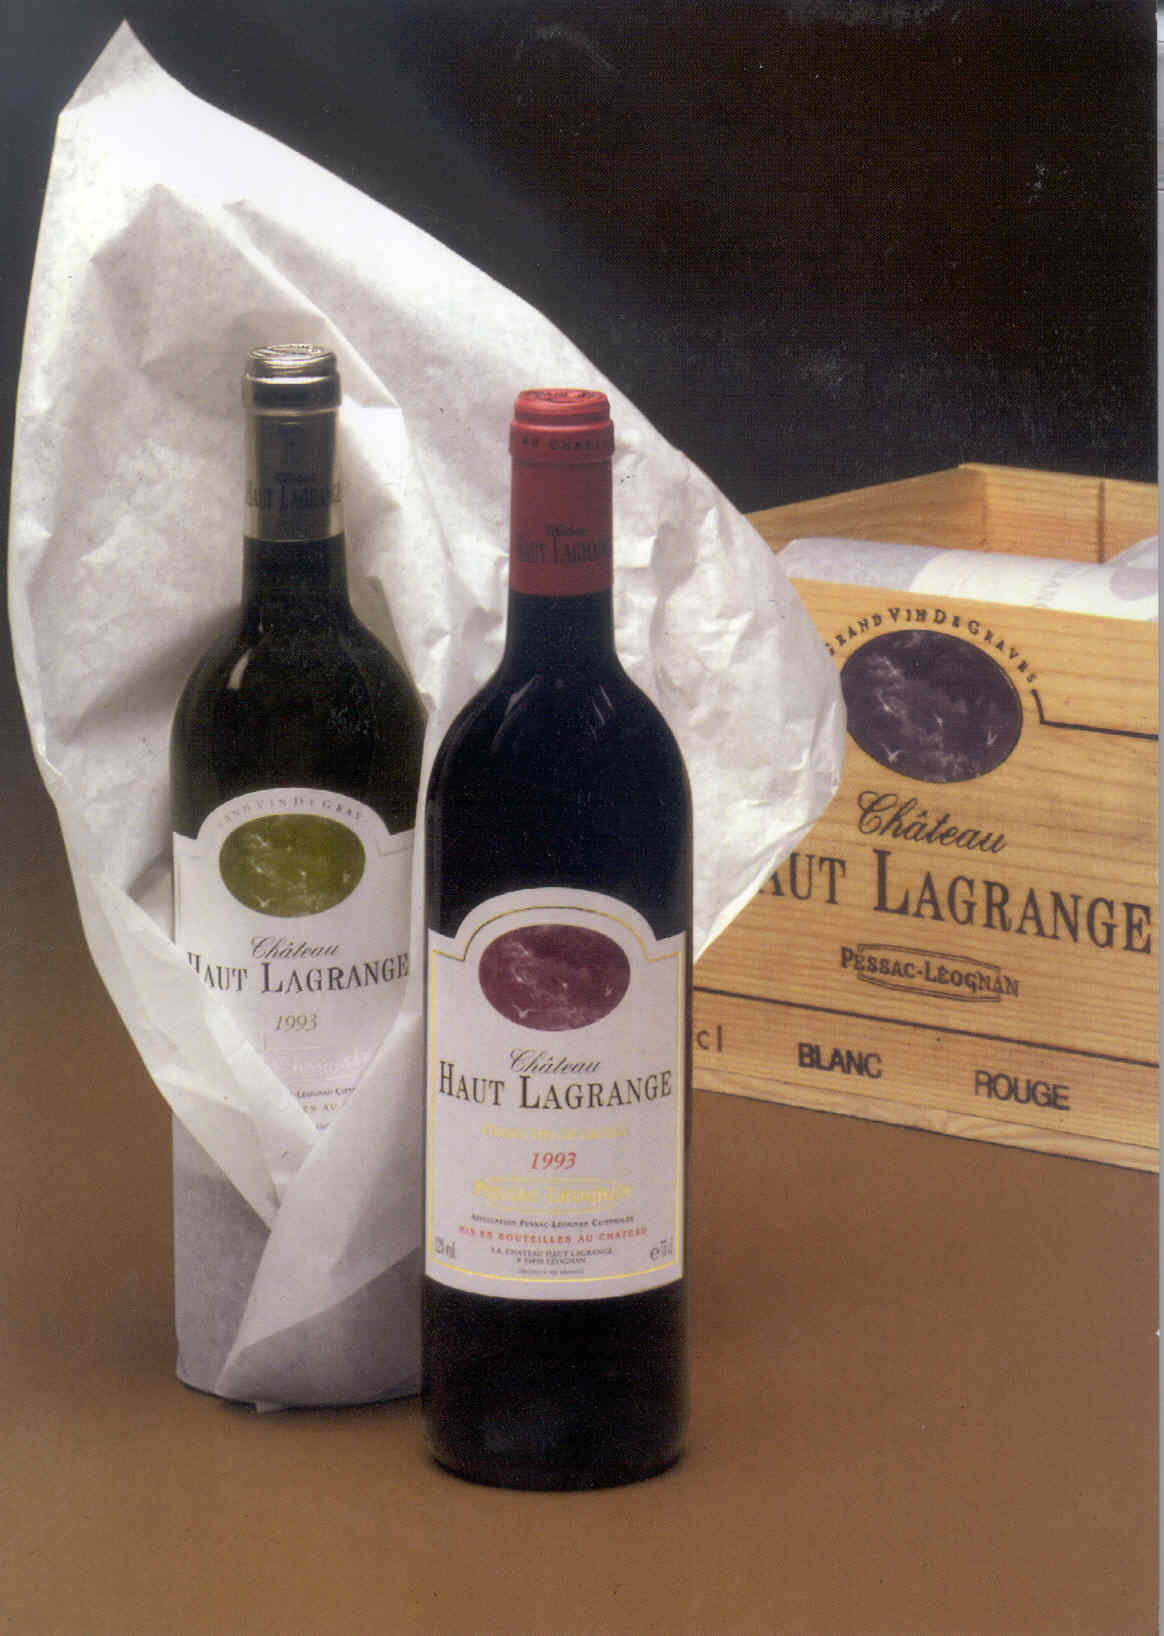 ch teau haut lagrange aoc pessac l ognan red 2014 technical sheet. Black Bedroom Furniture Sets. Home Design Ideas